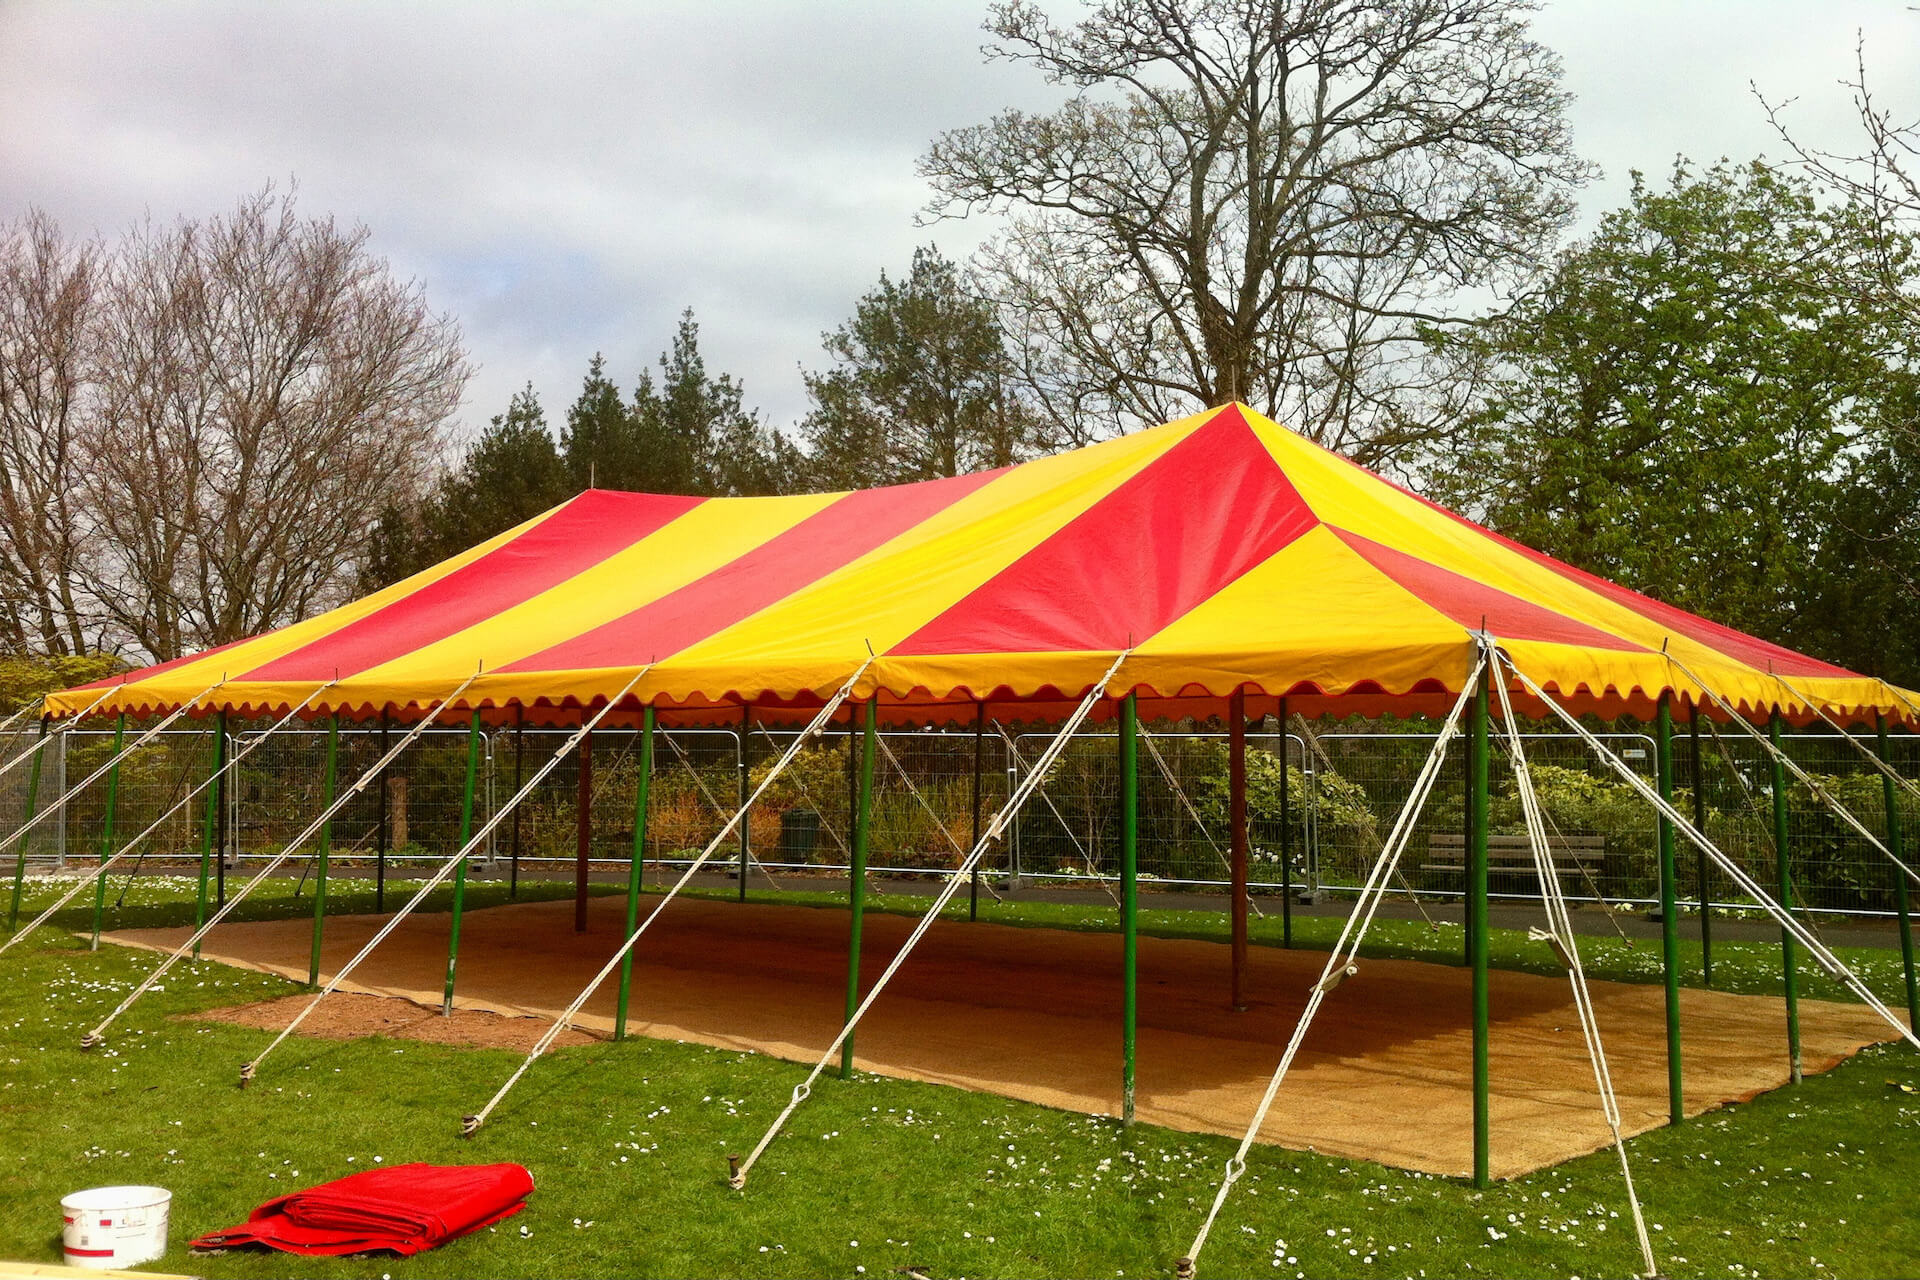 12m x 6m rectangular red and yellow tent for hire uk